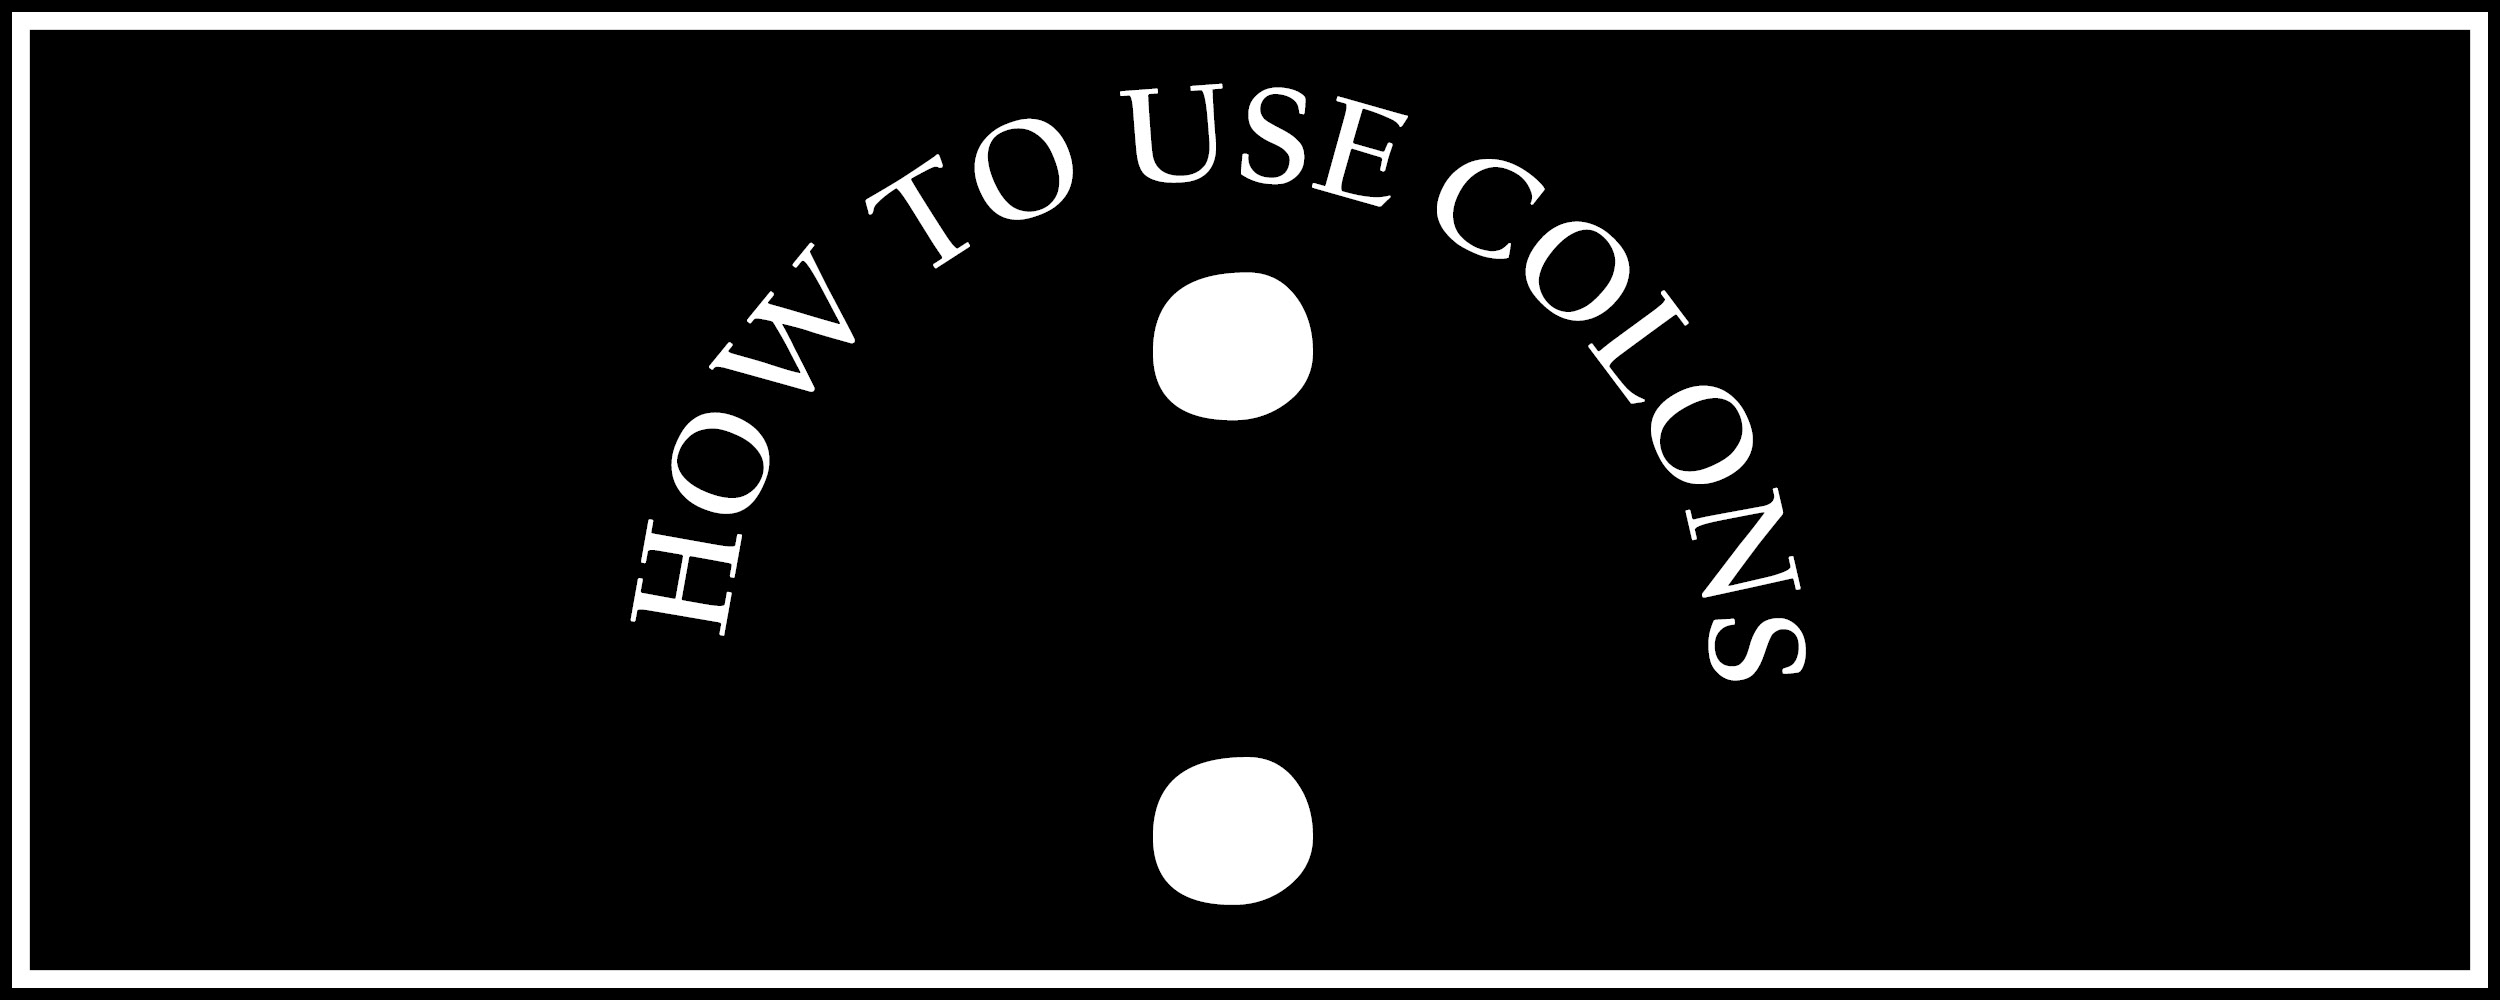 how-to-use-colon-banner